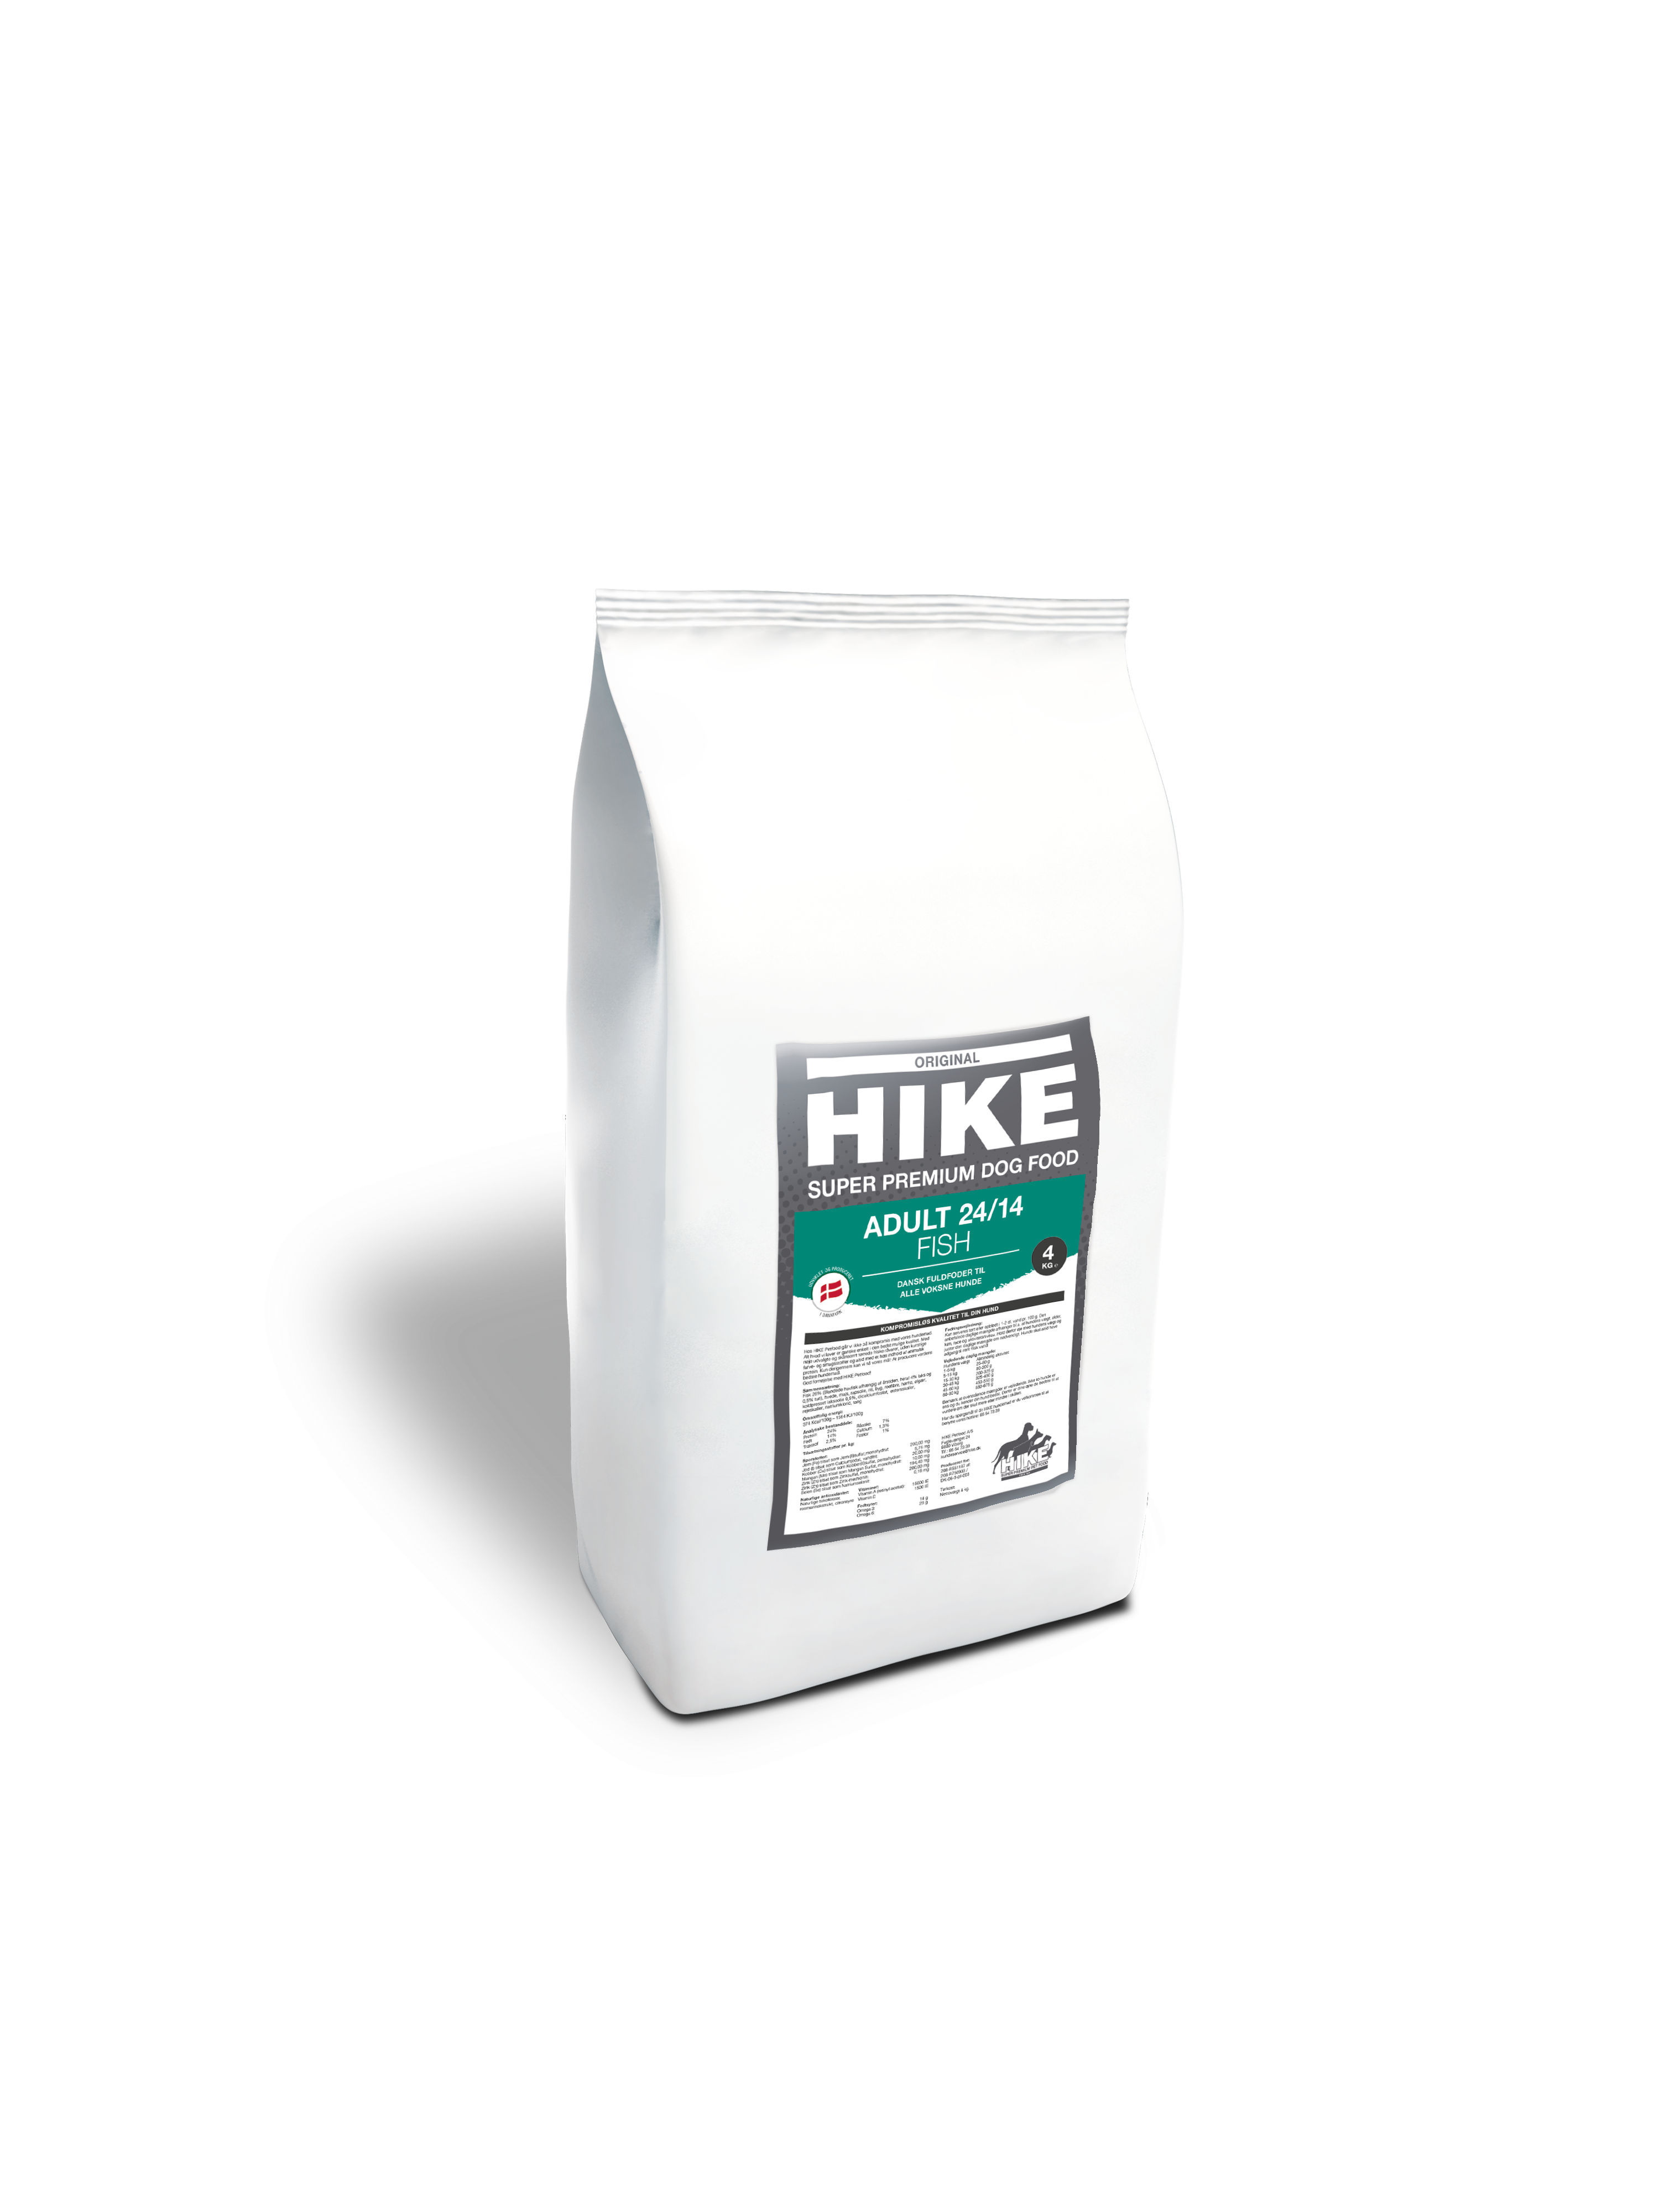 HIKE ORIGINAL Adult FISH 24/14 hundemad 4 kg